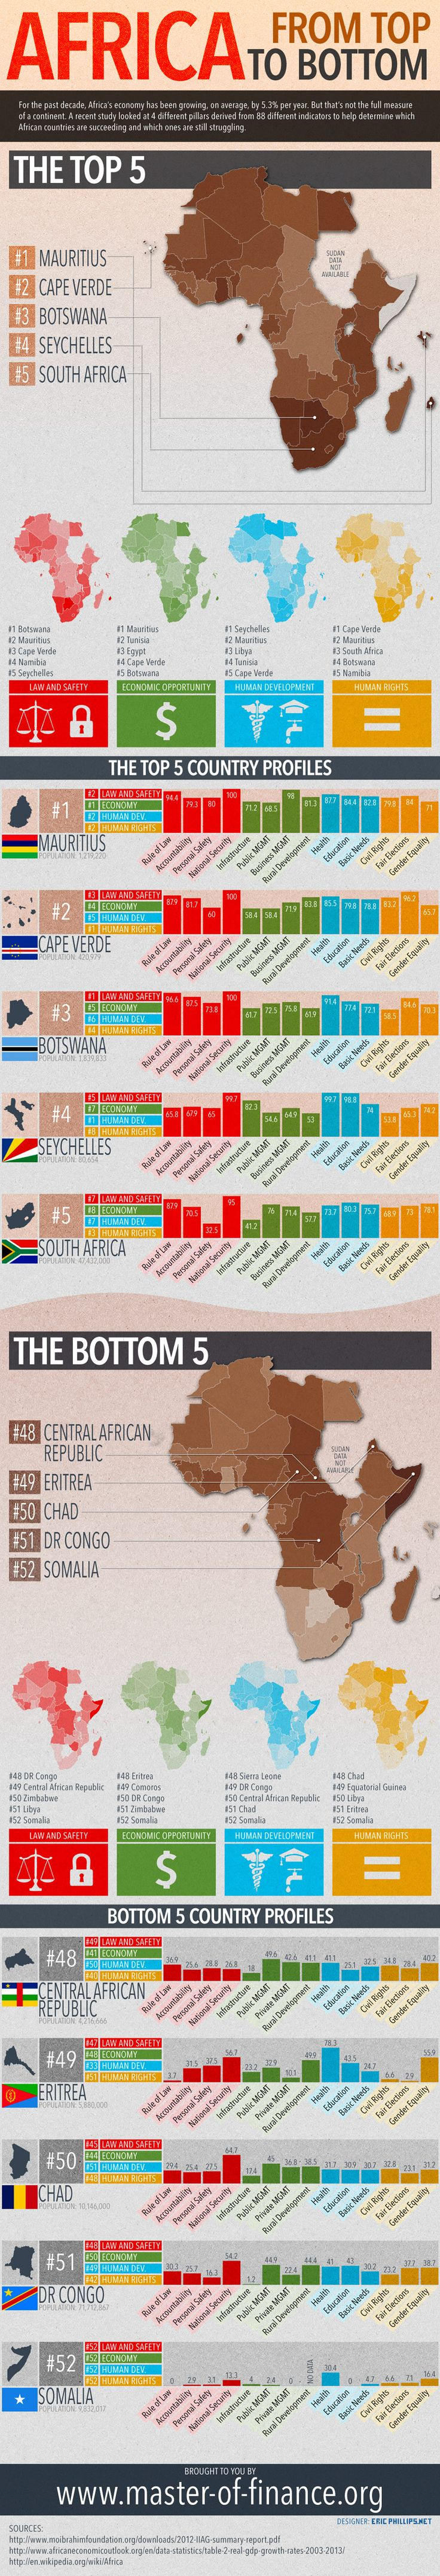 Check out this incredible #infographic  about #Africa and #development  from master-of-finance.org.